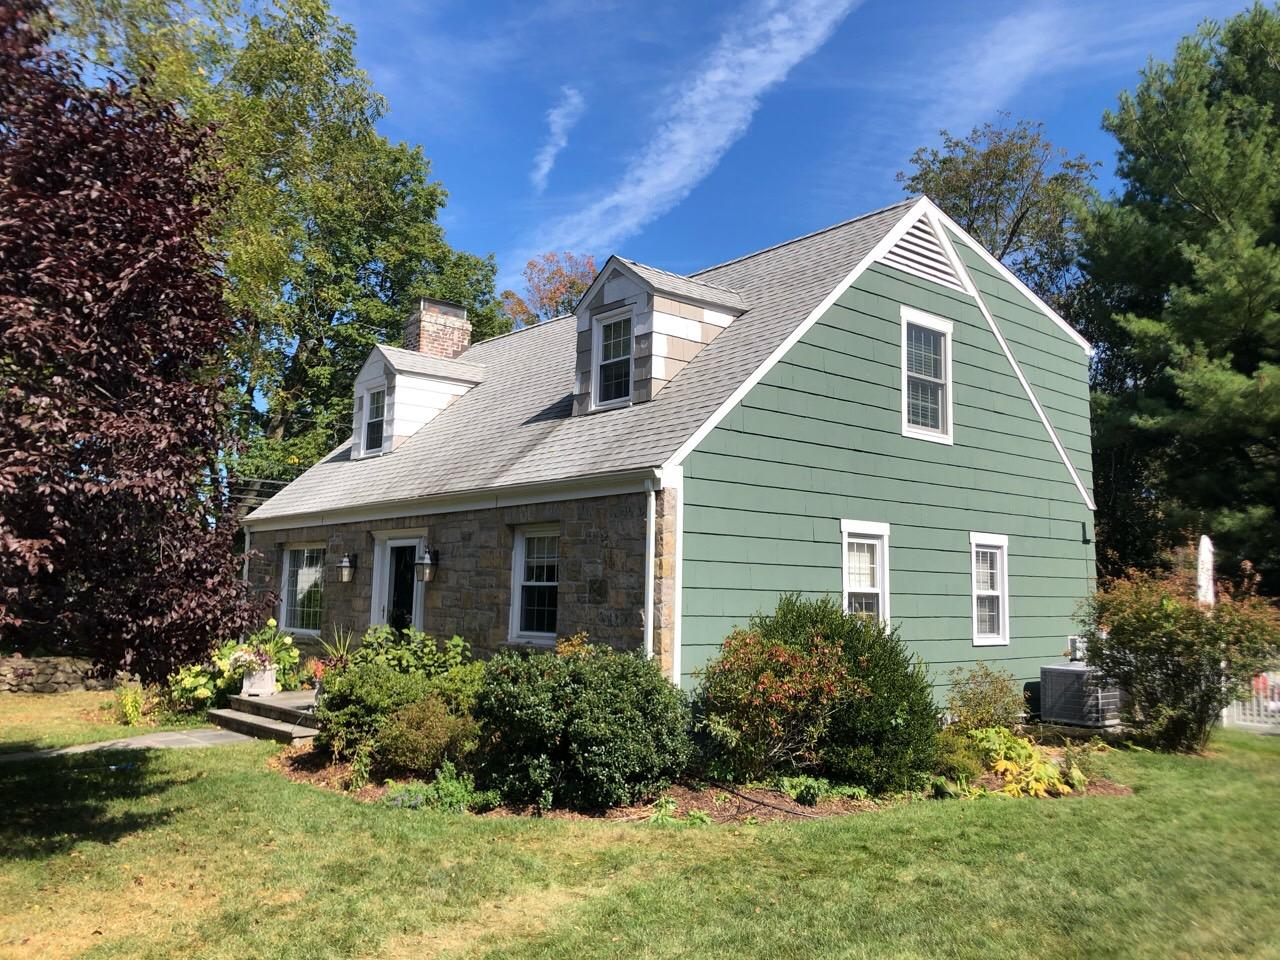 Mid-Point for Exterior Paint